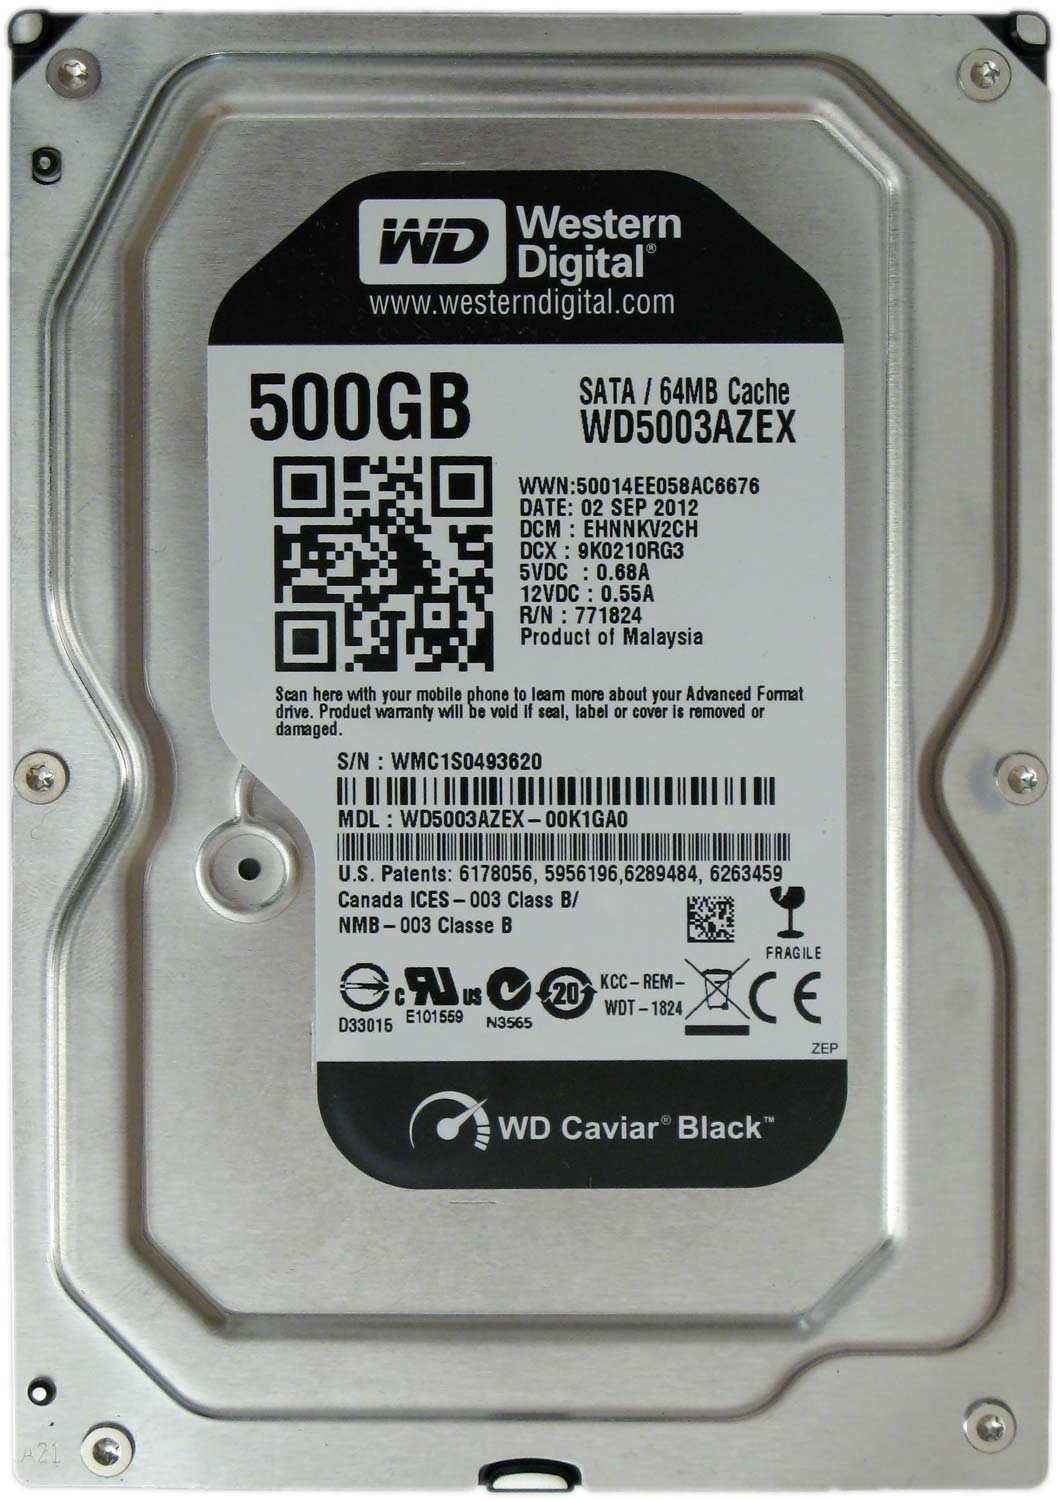 Жесткий диск WESTERN DIGITAL WD5003AZEX 500GB SATA 7200 RPM 6GB/S 64MB от Ravta